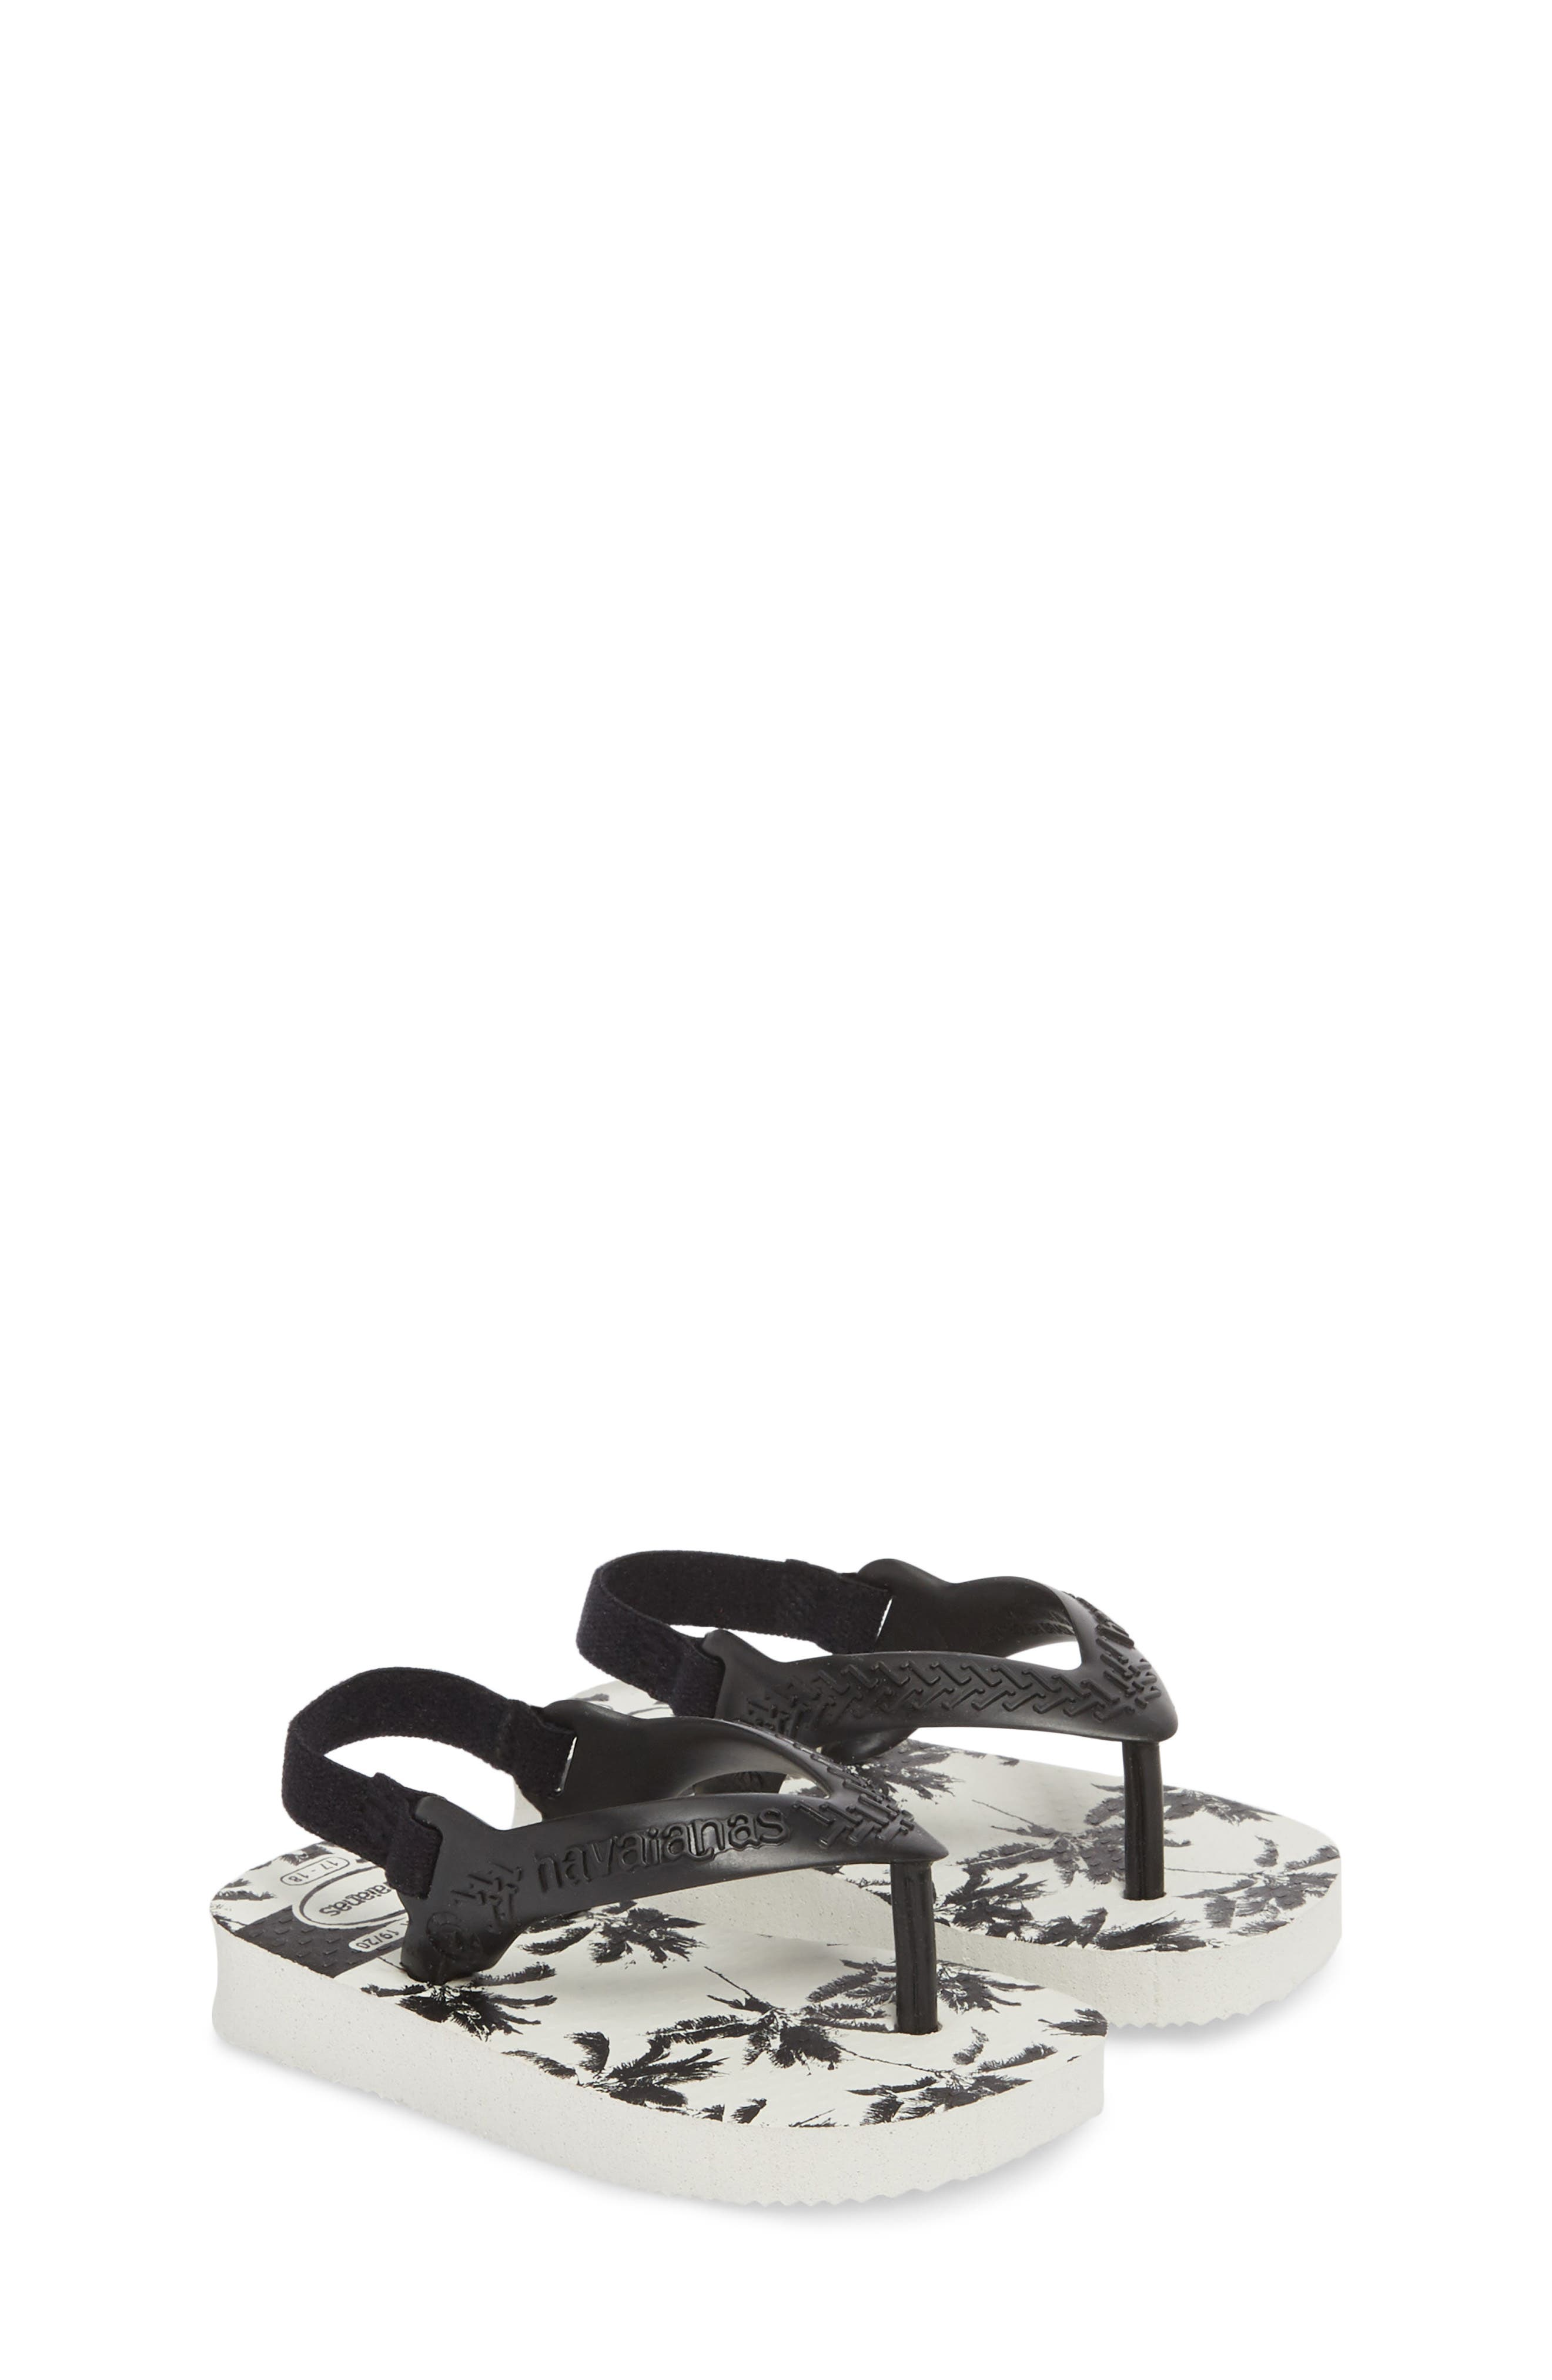 Havianas Baby Chic Sandal,                             Alternate thumbnail 3, color,                             White/ Black/ Black